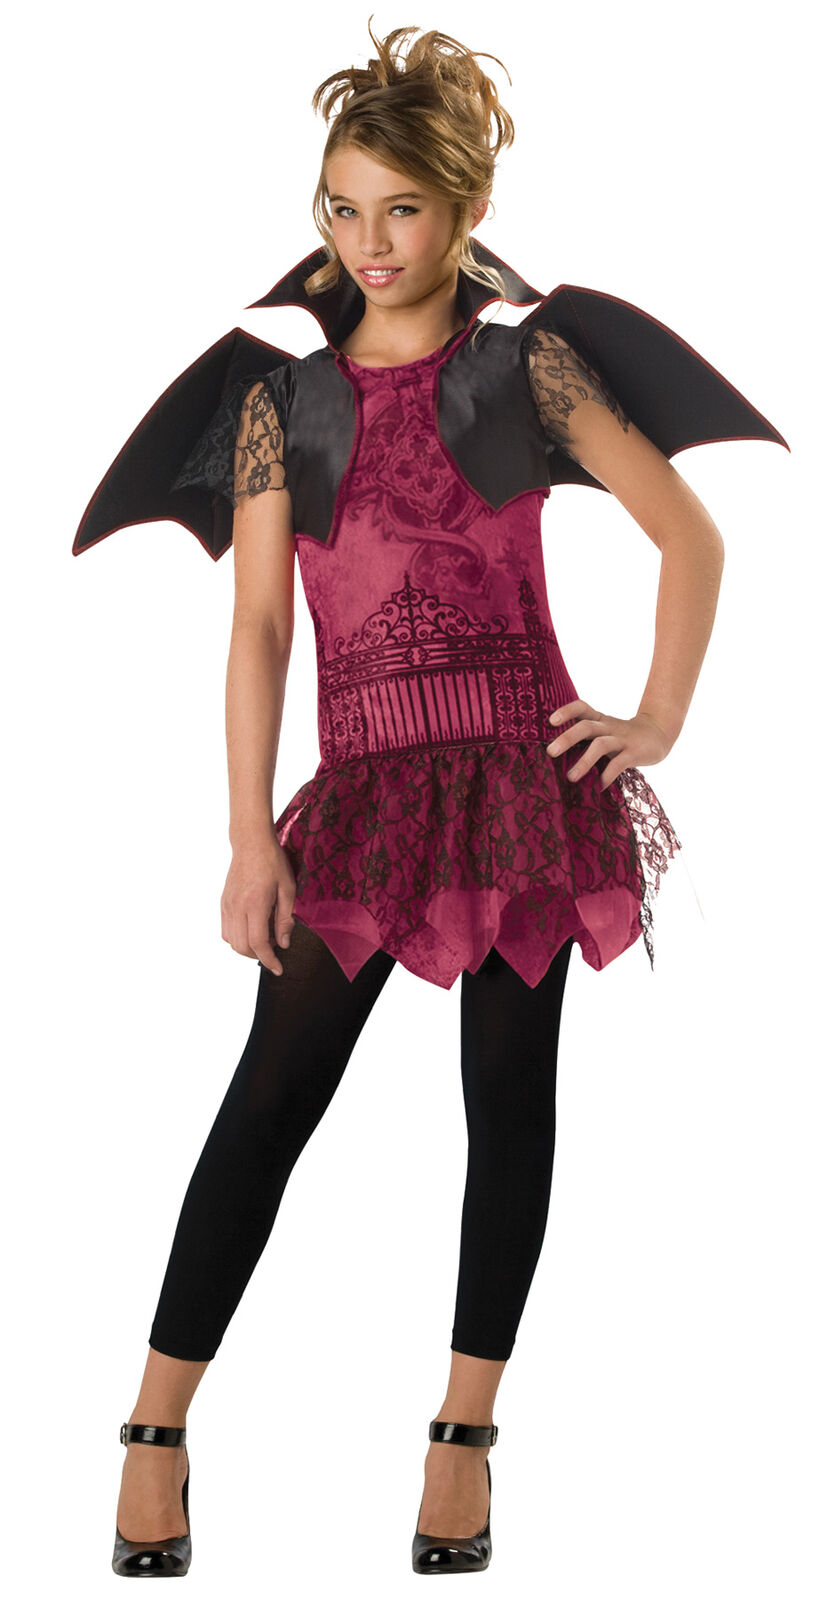 Twilight Trickster Tween Child Costume Dress Wings Scary Theme Party Halloween